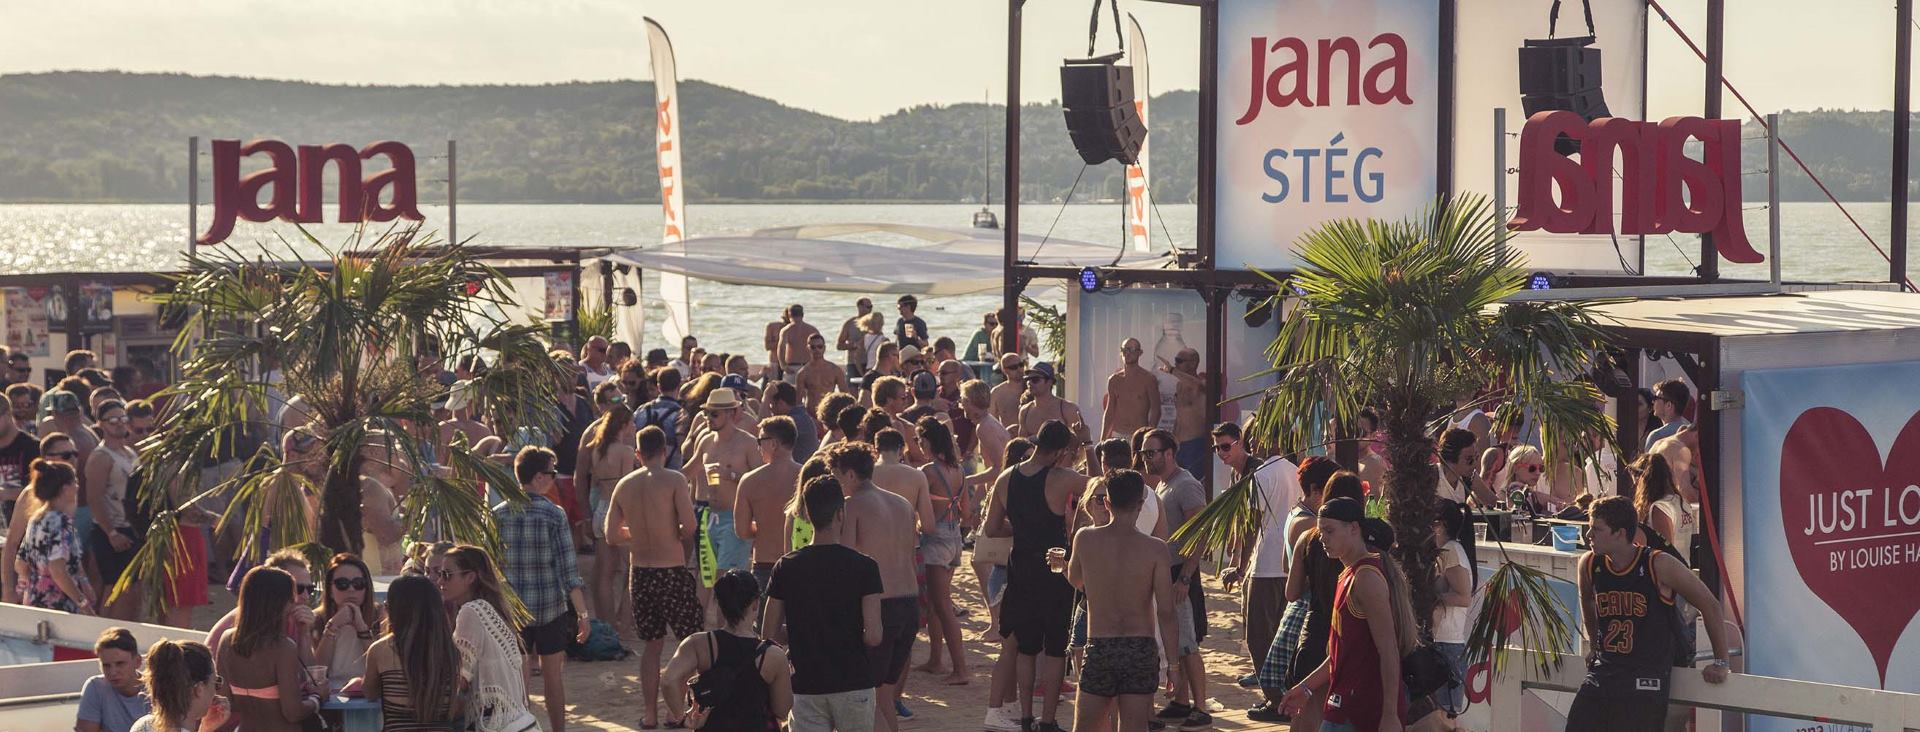 FOTO: VIDEO: JANA STAGE Središnje mjesto after-partyja u sklopu Balaton Sound Festivala